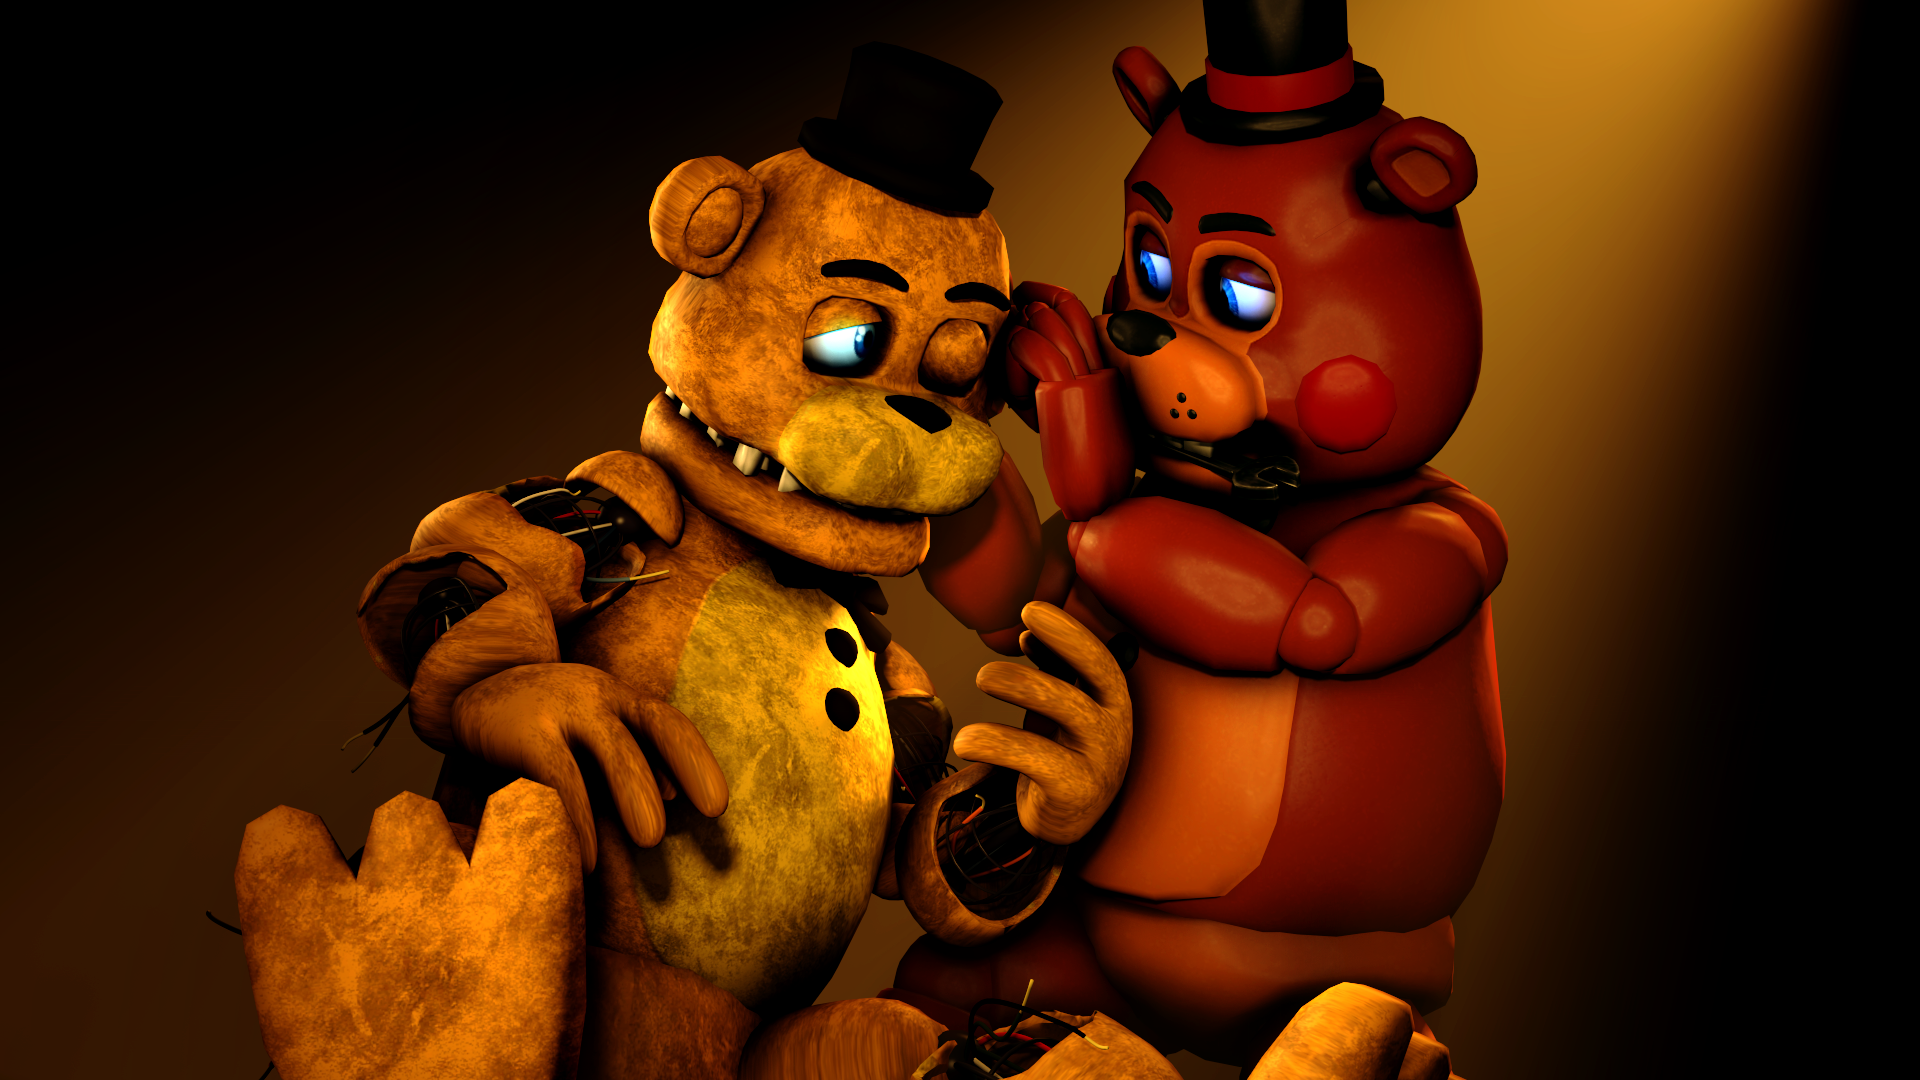 Old Freddy Toys : How we became brothers toy freddy and goldie by talondang